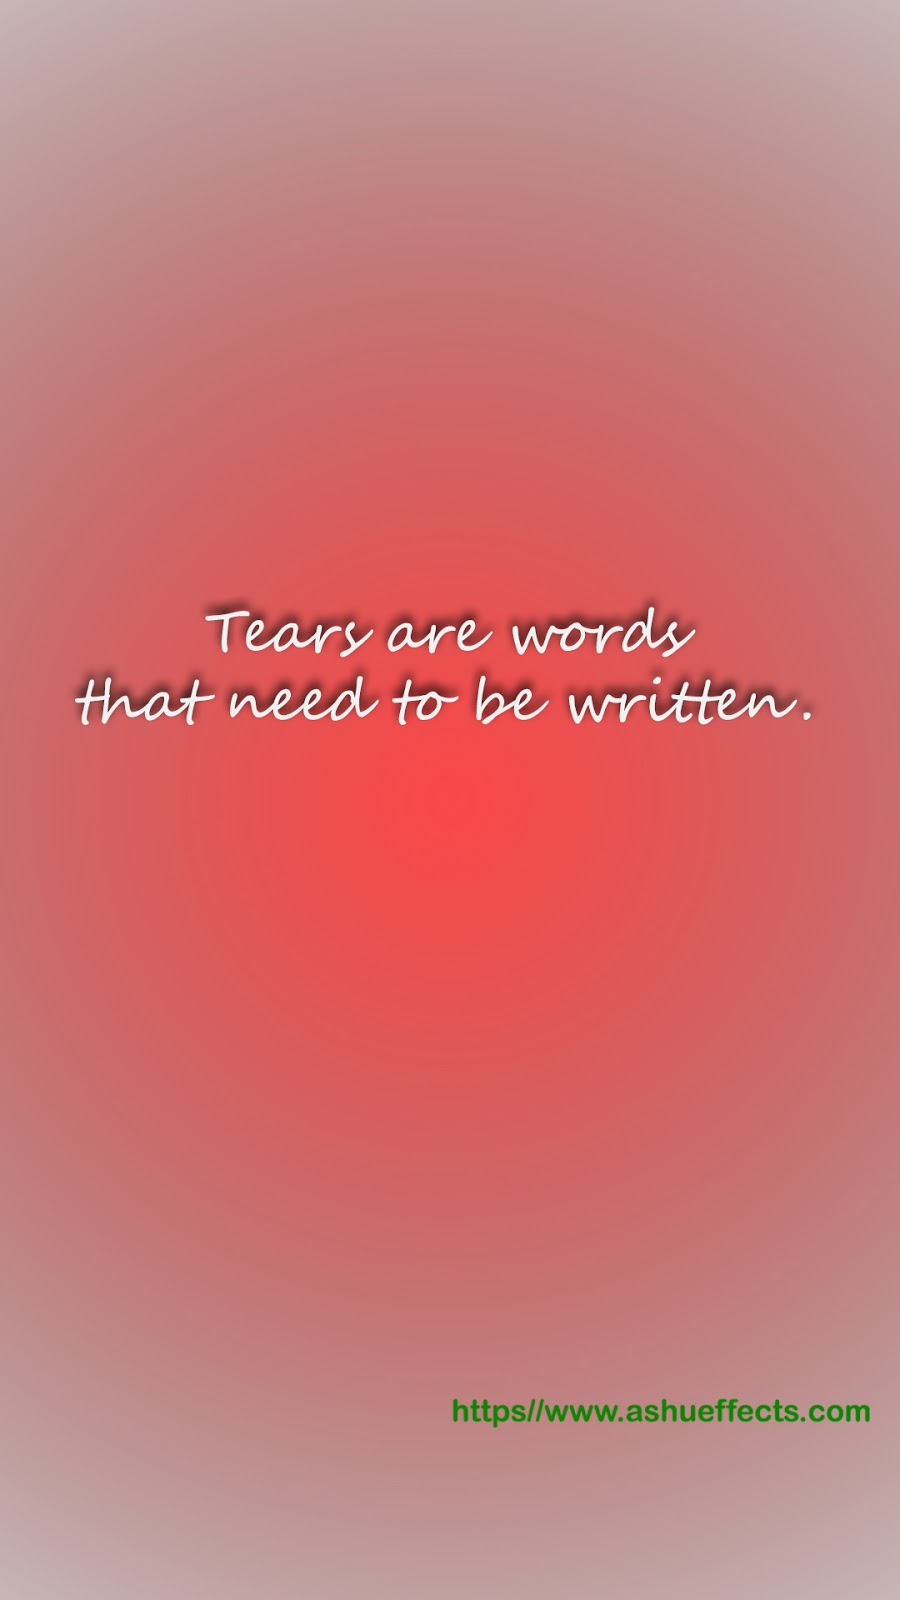 Sad Quotes Full Hd Wallpapers For Mobile 900x1600 Download Hd Wallpaper Wallpapertip